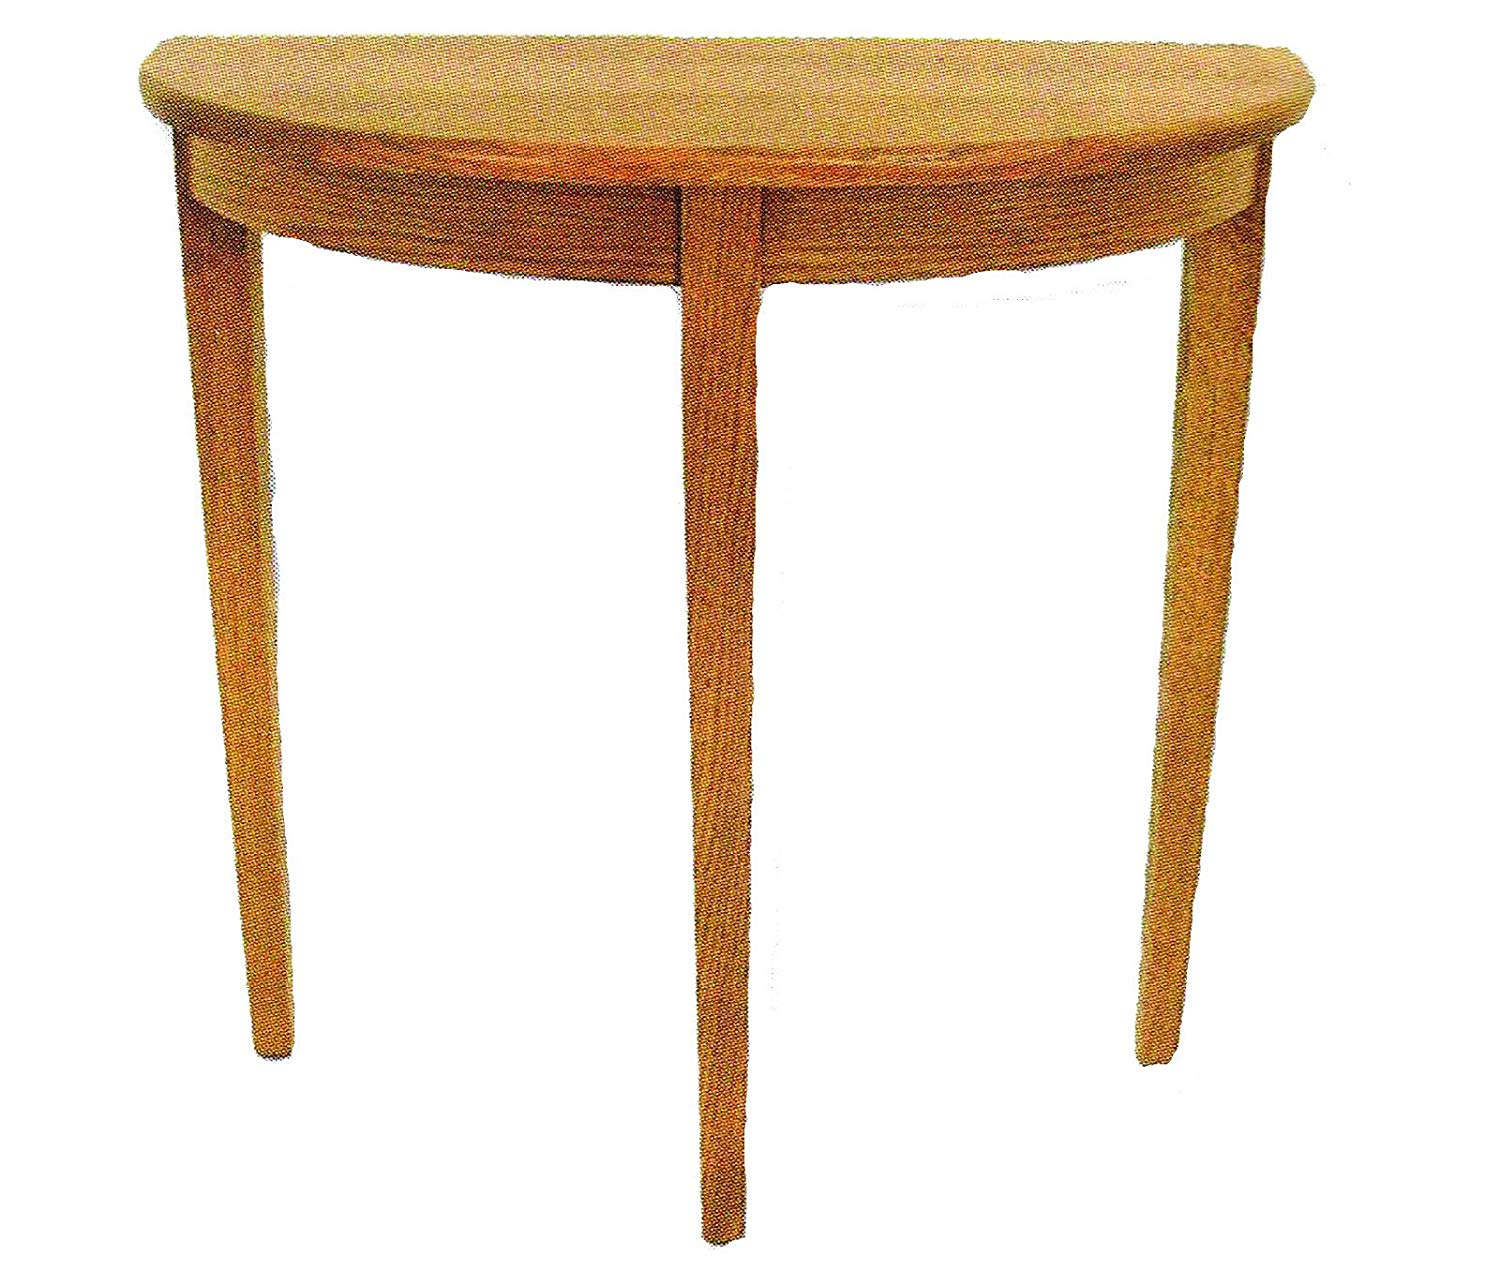 oak hall foyer half round accent table amish made usa kitchen dining chinese ceramic lamps living room design quilted runners and placemats lamp shades plus laminate door